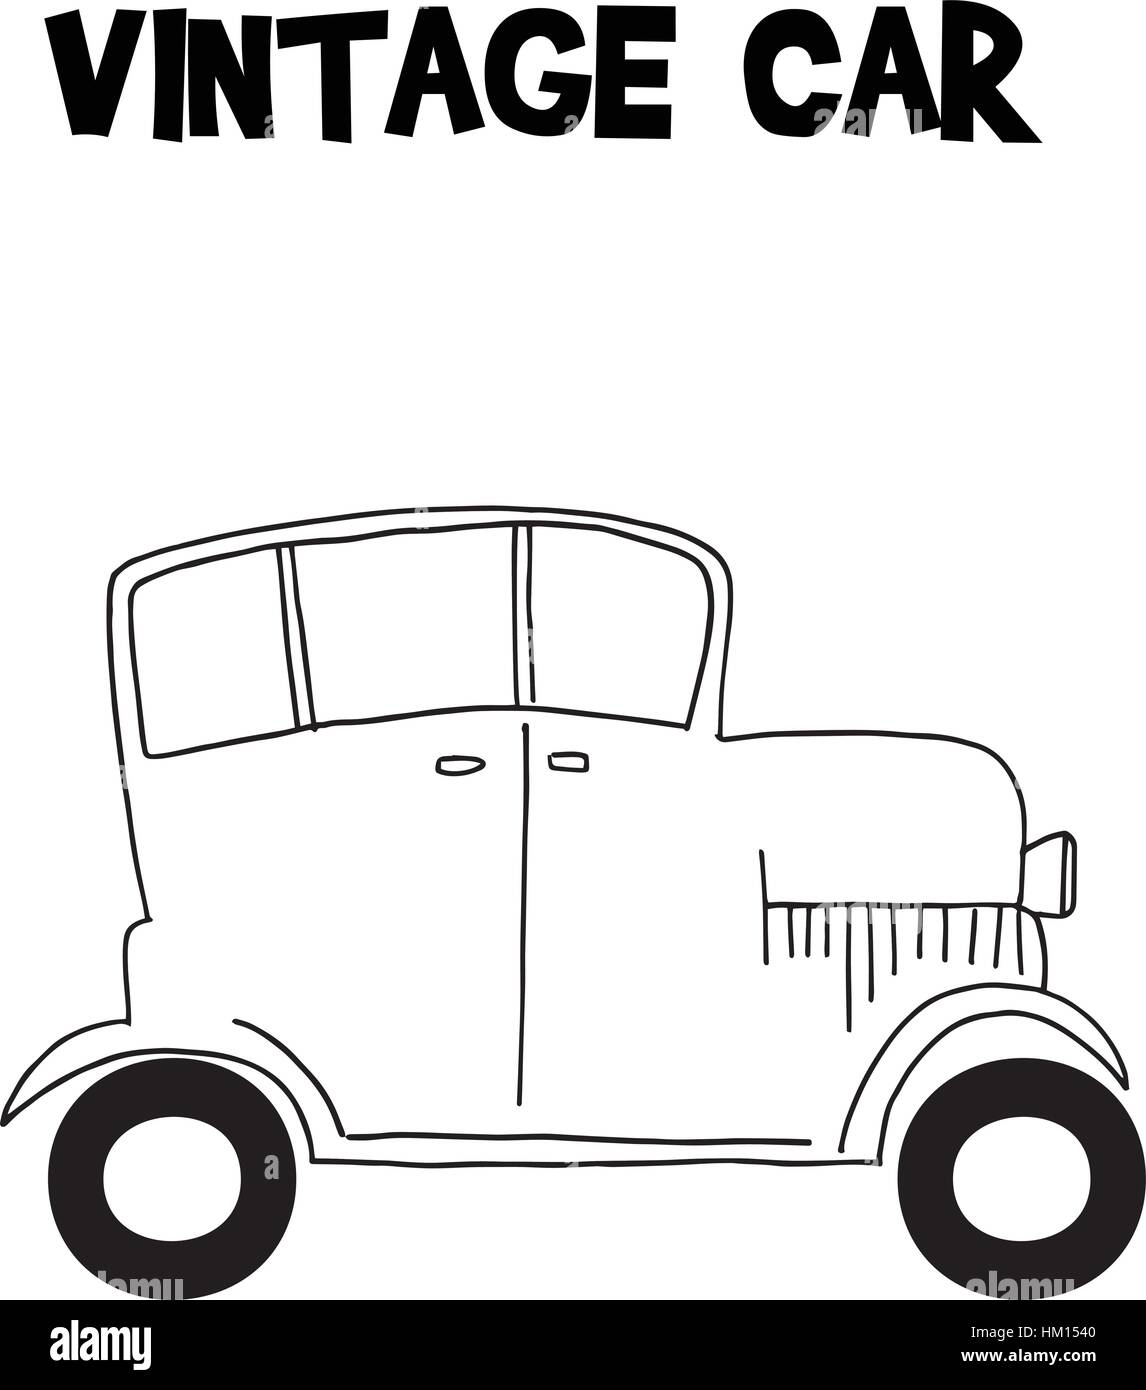 Vintage car style of transportation - Stock Vector